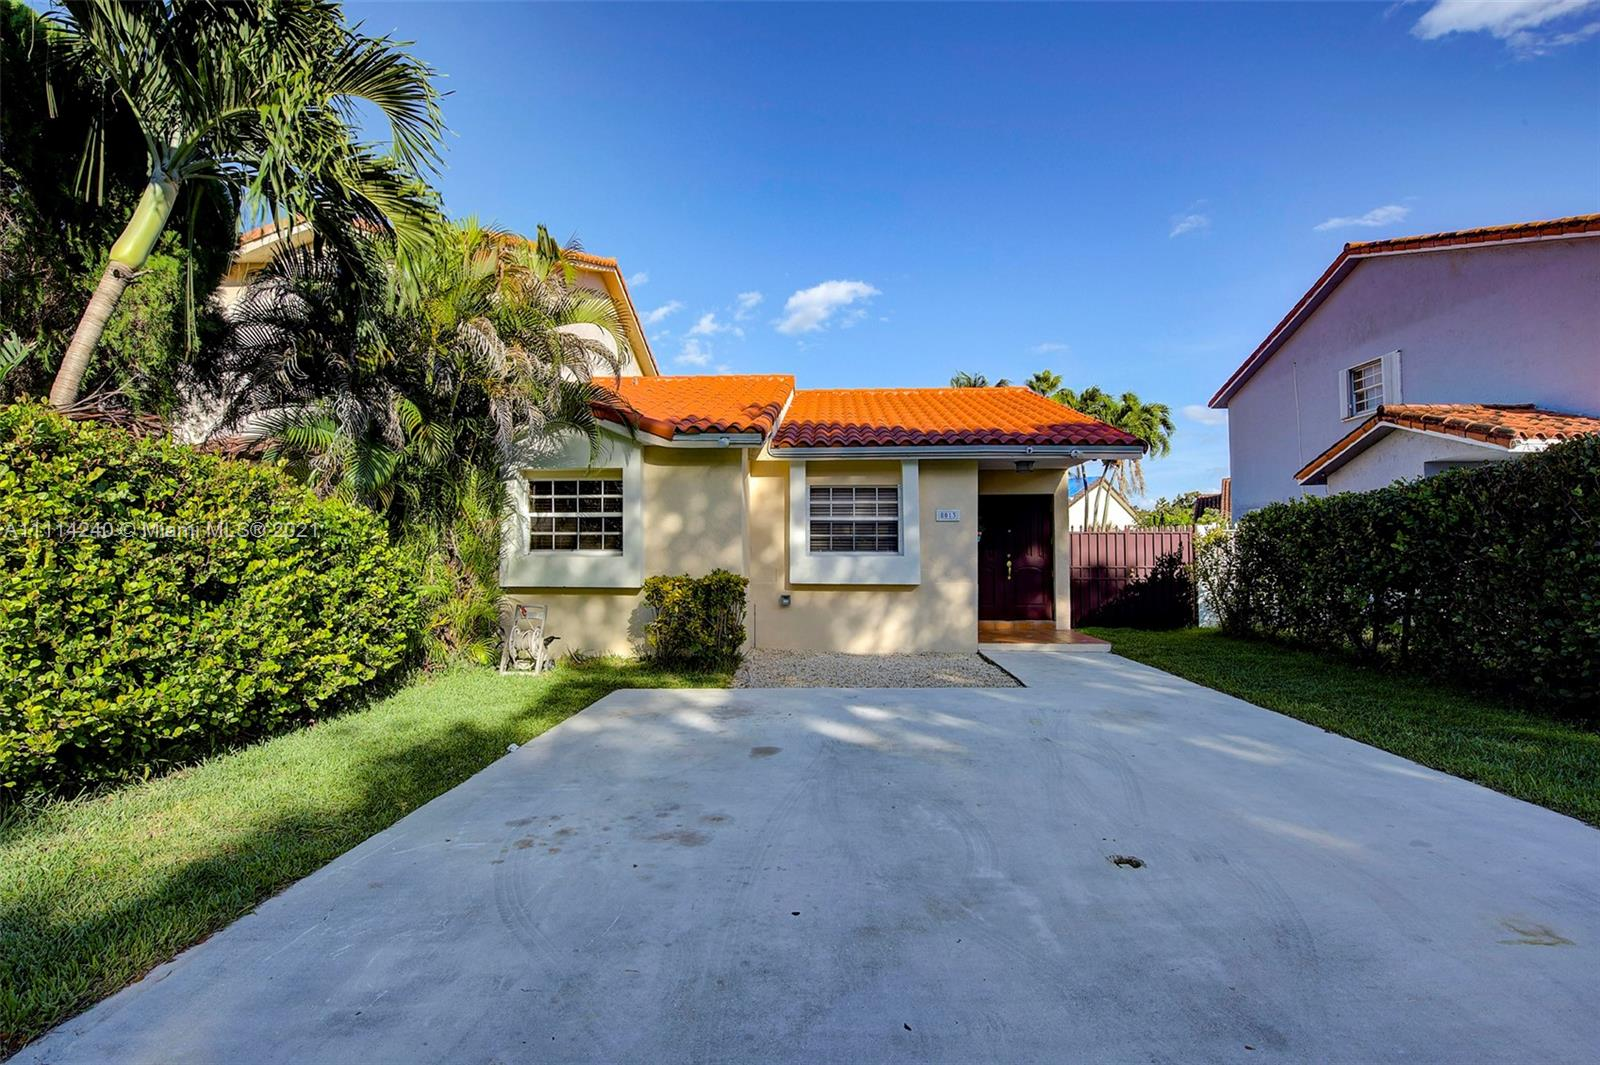 Residential For Sale at 8013 Miami